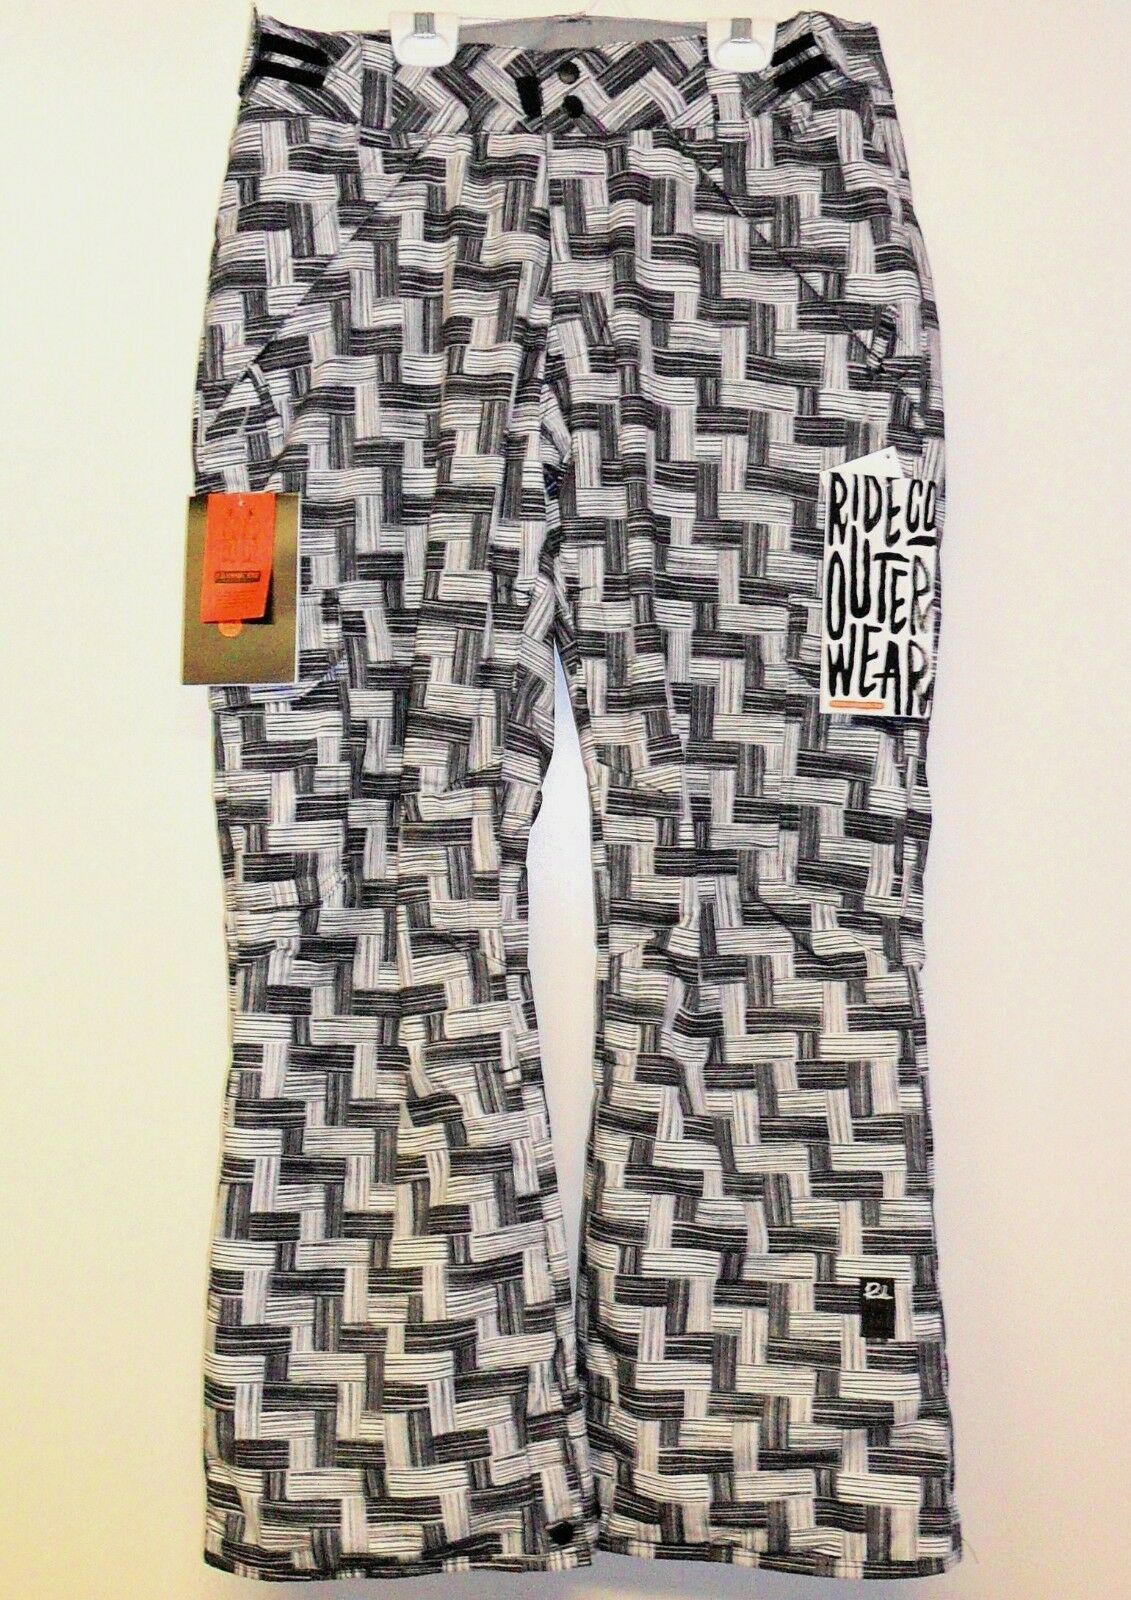 RIDE Women's HIGHLAND Insulated Pants - Blk WhtWeave - XSmall - NWT